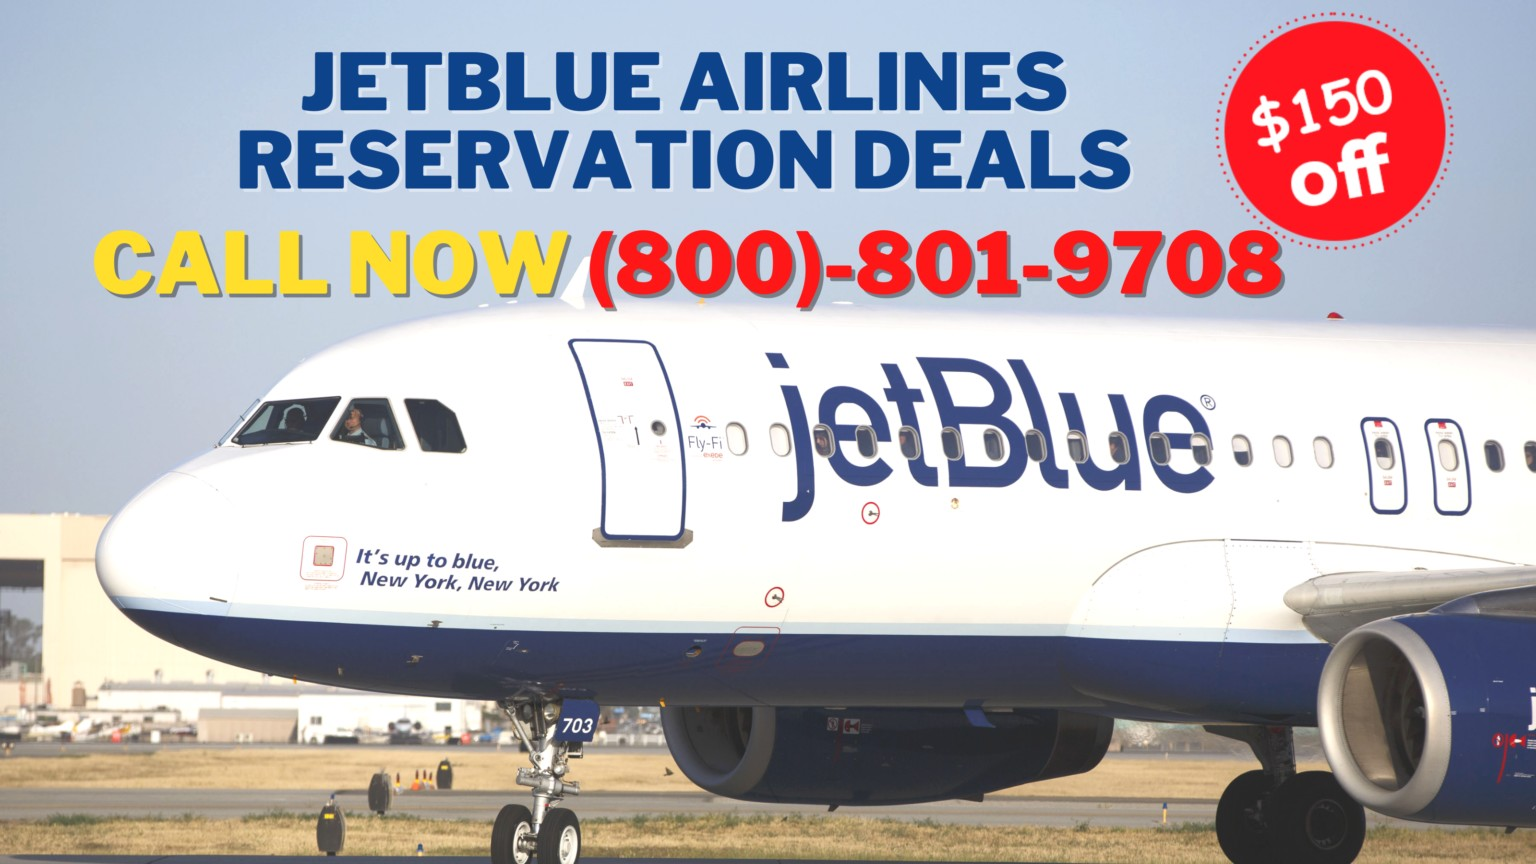 Advantages of Choosing JetBlue Reservations